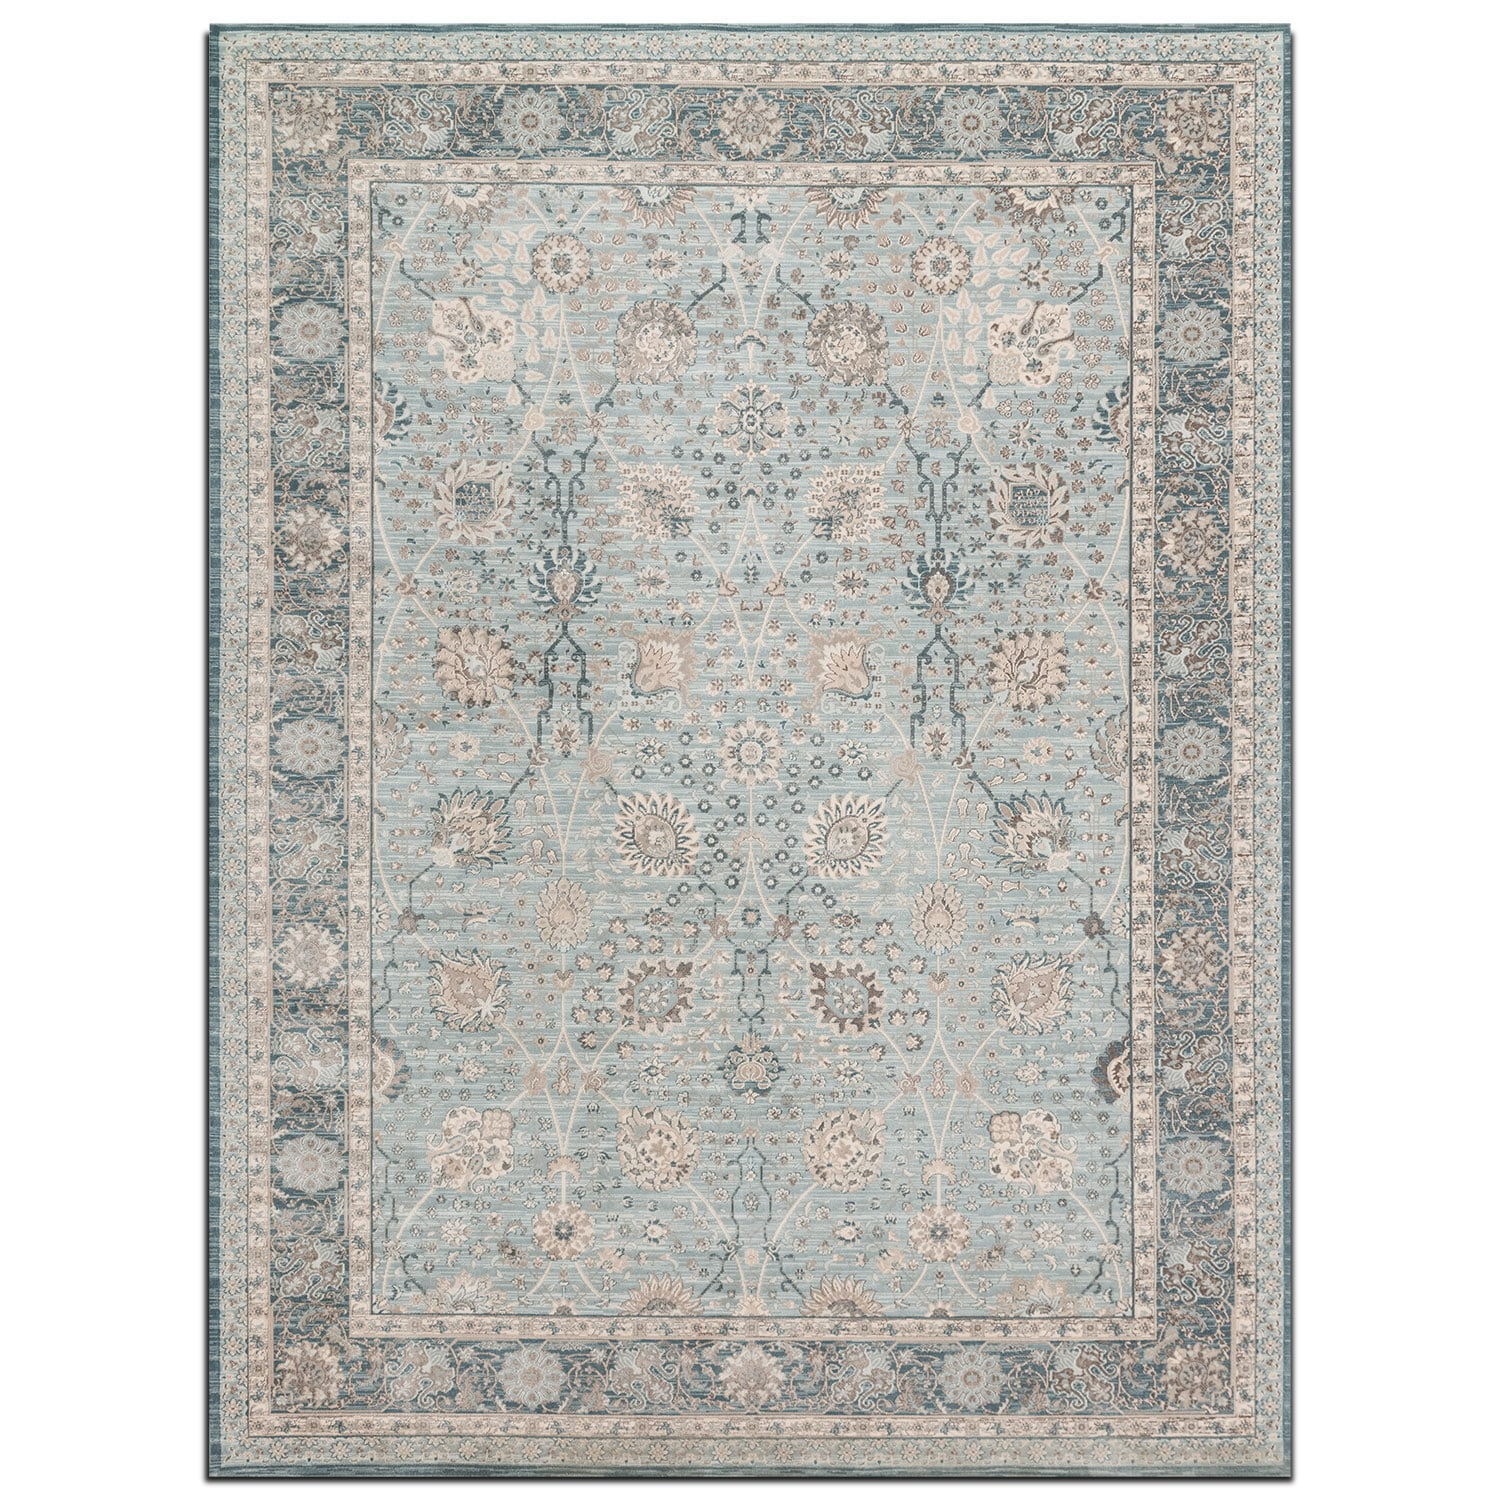 Ella Rose 5' x 8' Rug - Light and Dark Blue